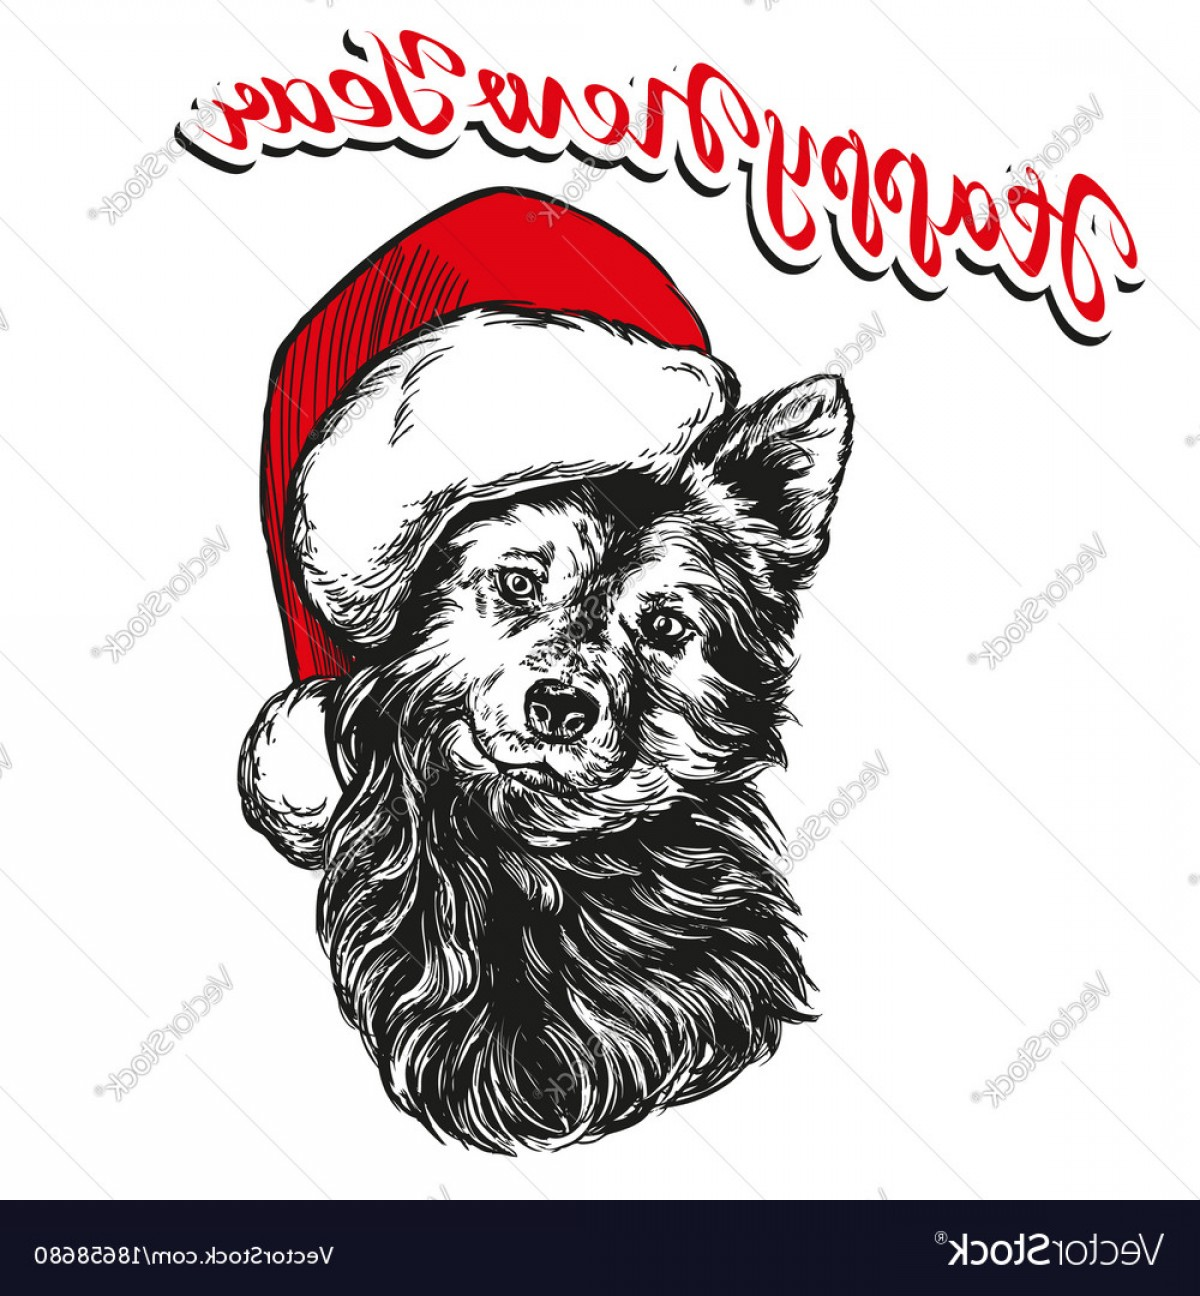 Stocking Hat Vector: Cute Dog In Santa Stocking Hat Santa Claus Christmas Vector